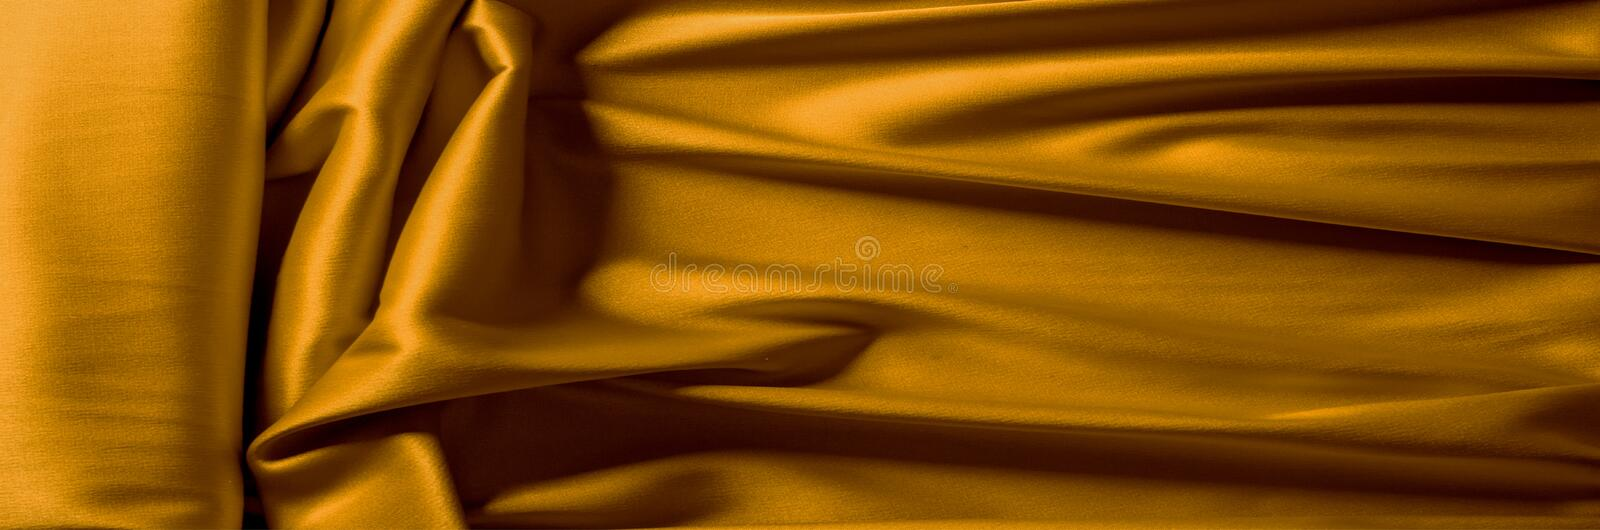 Background texture pattern of dark yellow silk fabric. An unriva. Led example of excellent craftsmanship and fine craftsmanship brought by the Mughals in India royalty free stock photos